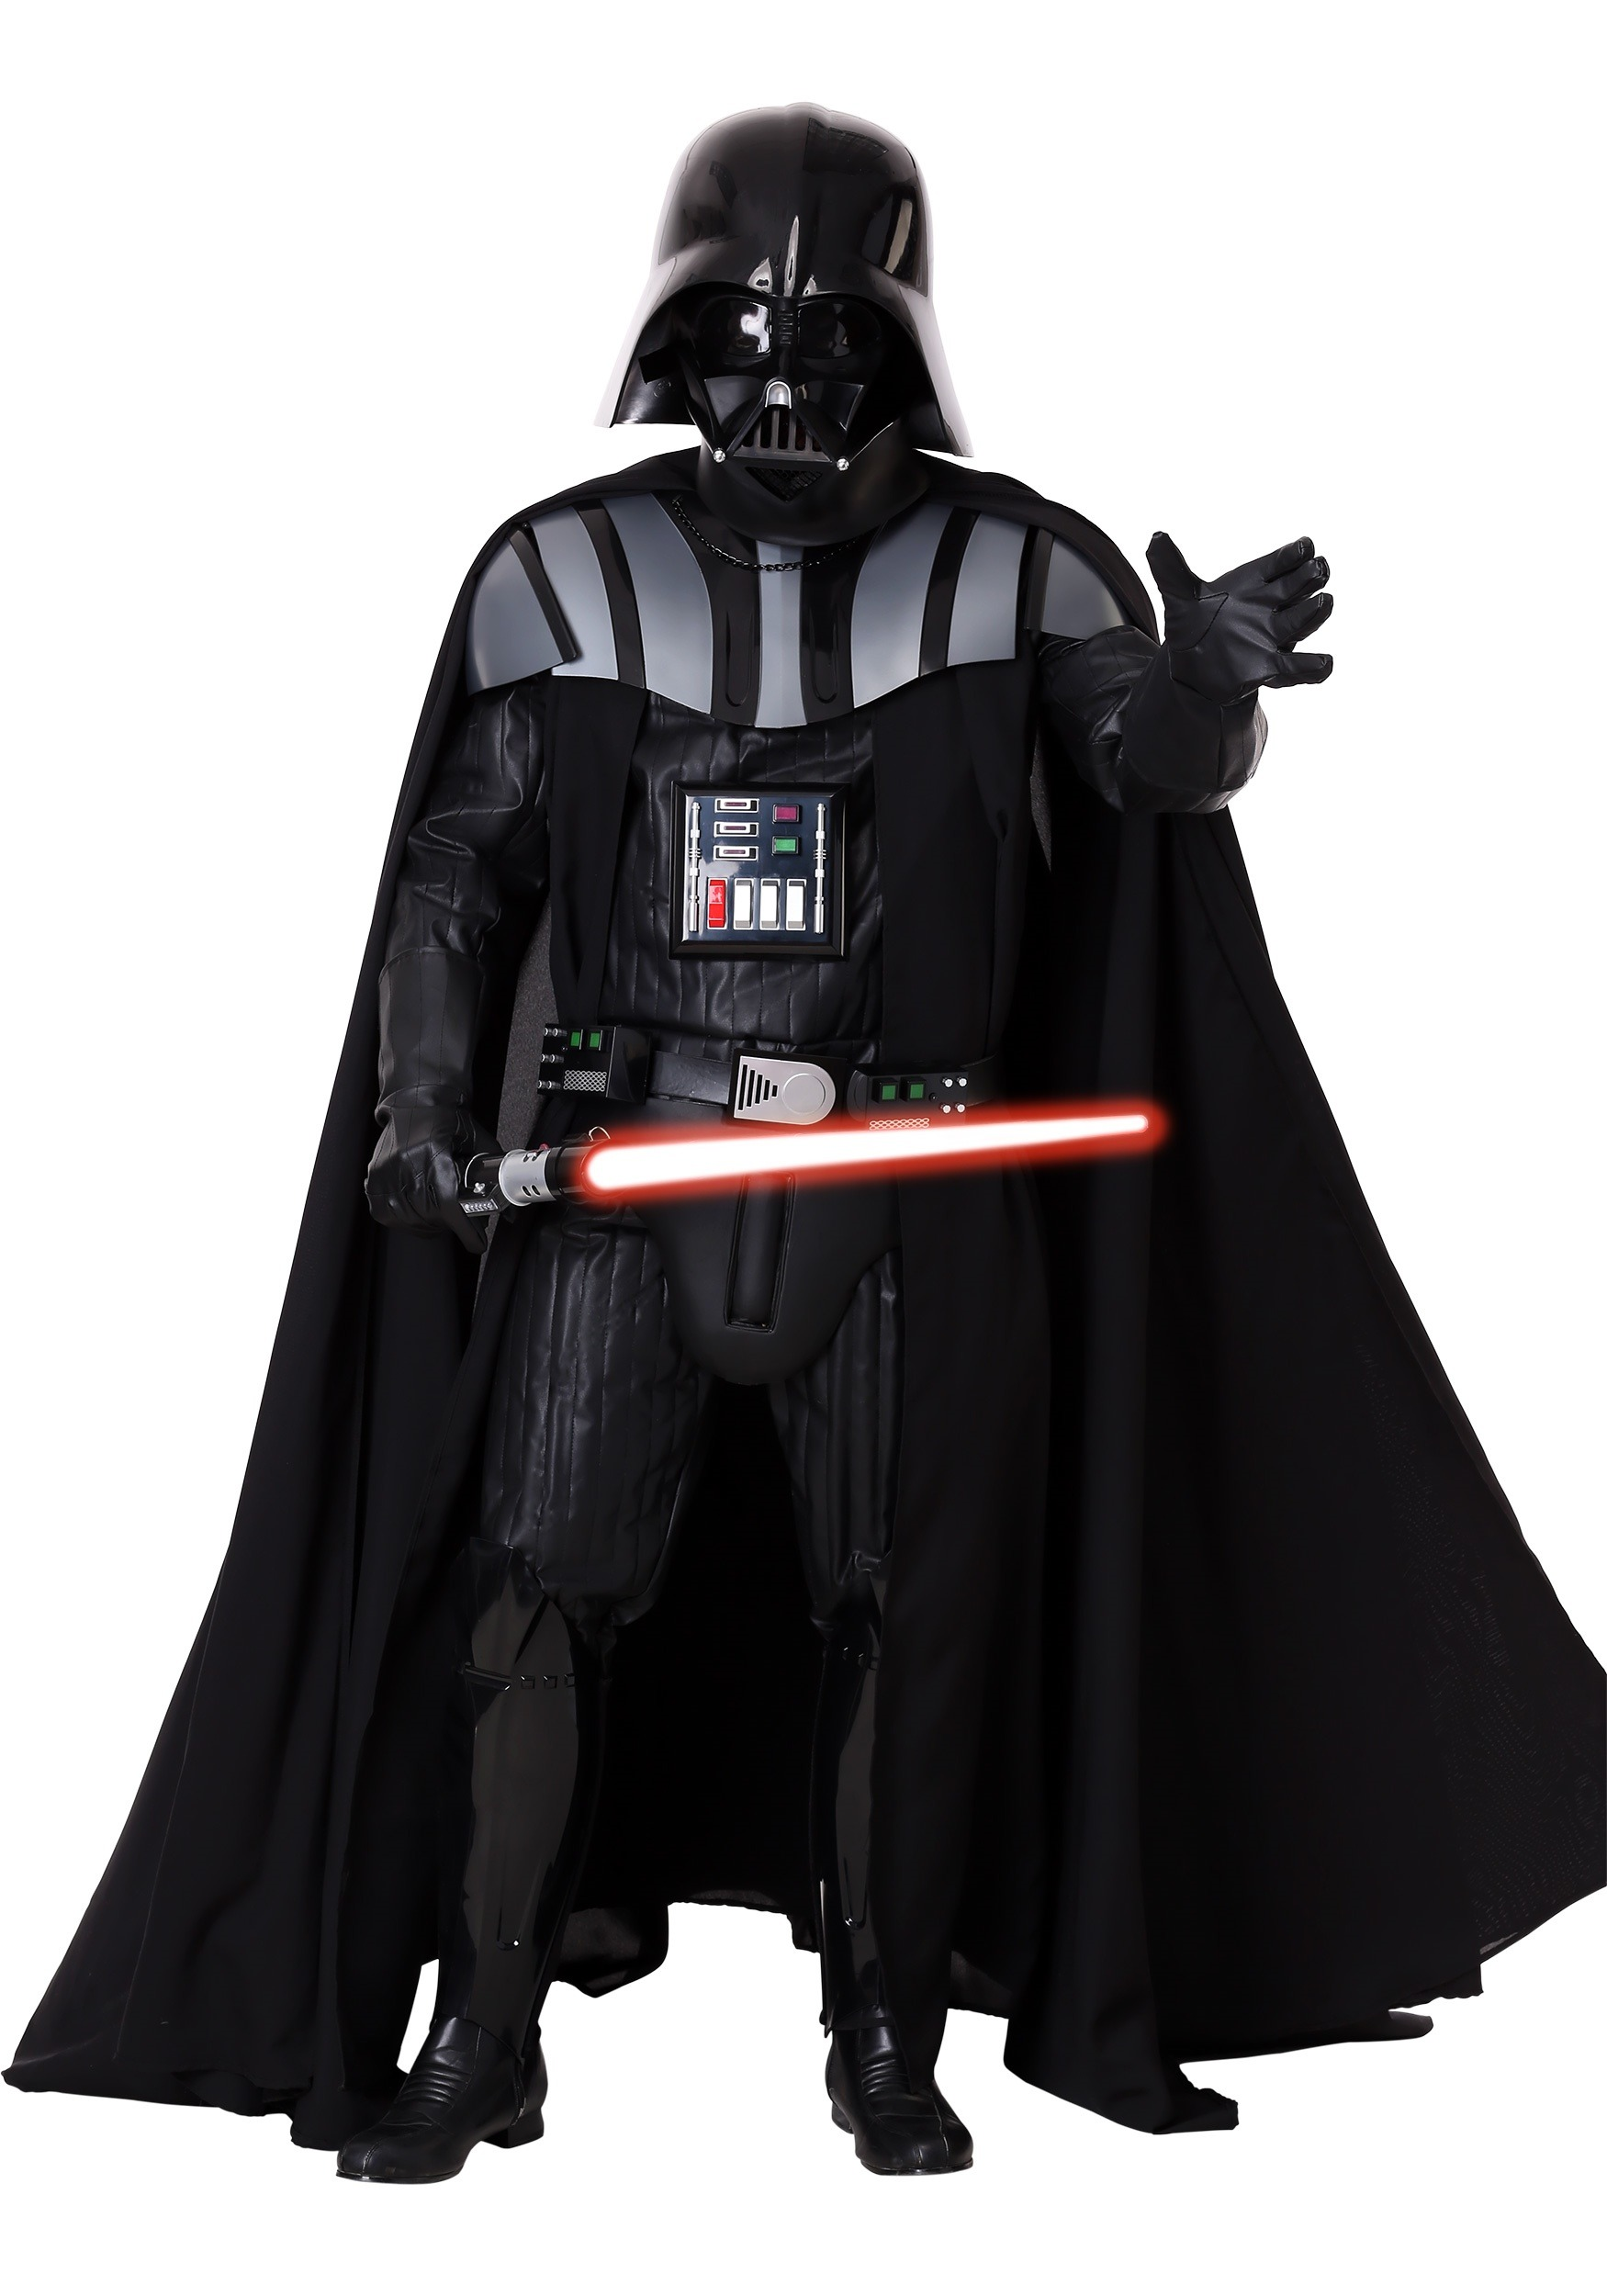 authentic darth vader costume - Halloween Darth Vader